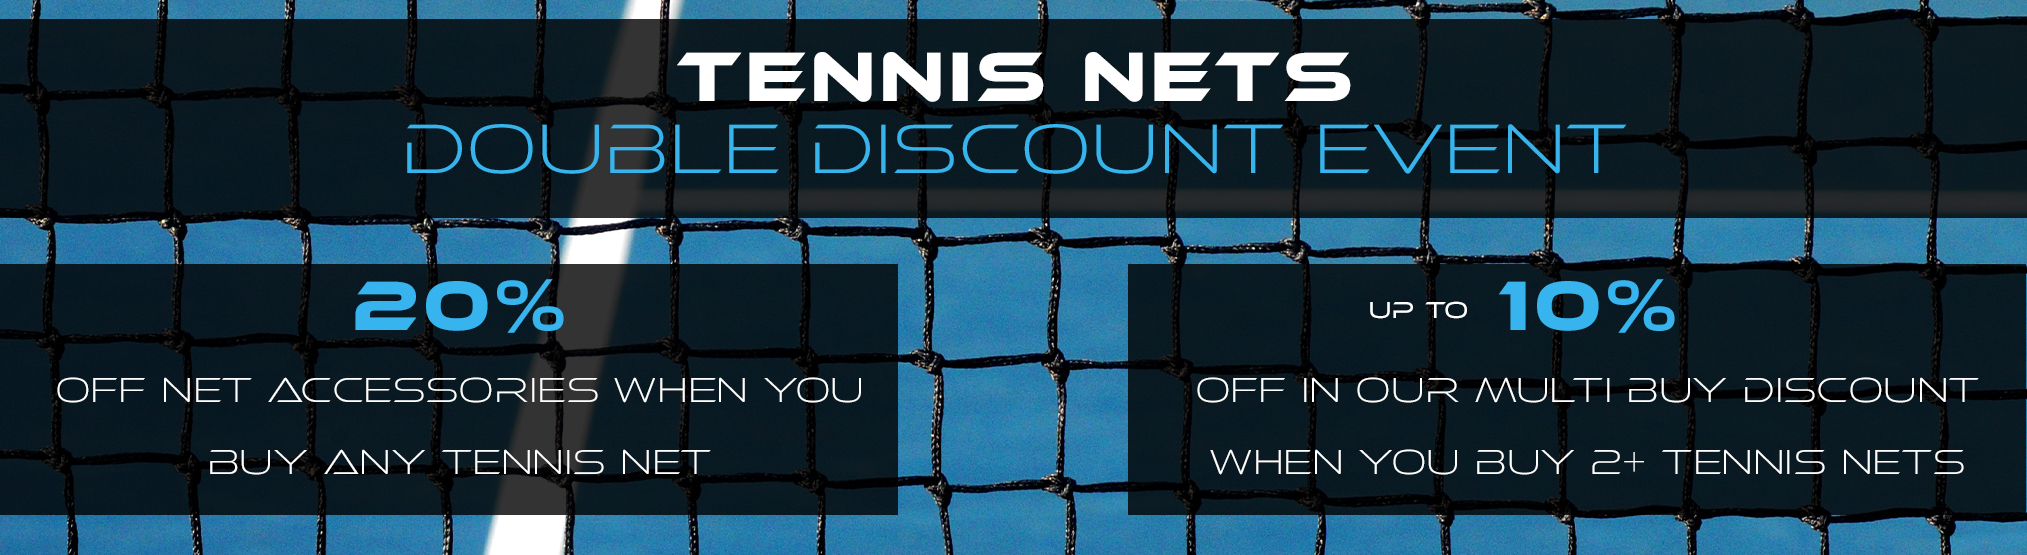 Tennis Nets - Double Discount Event